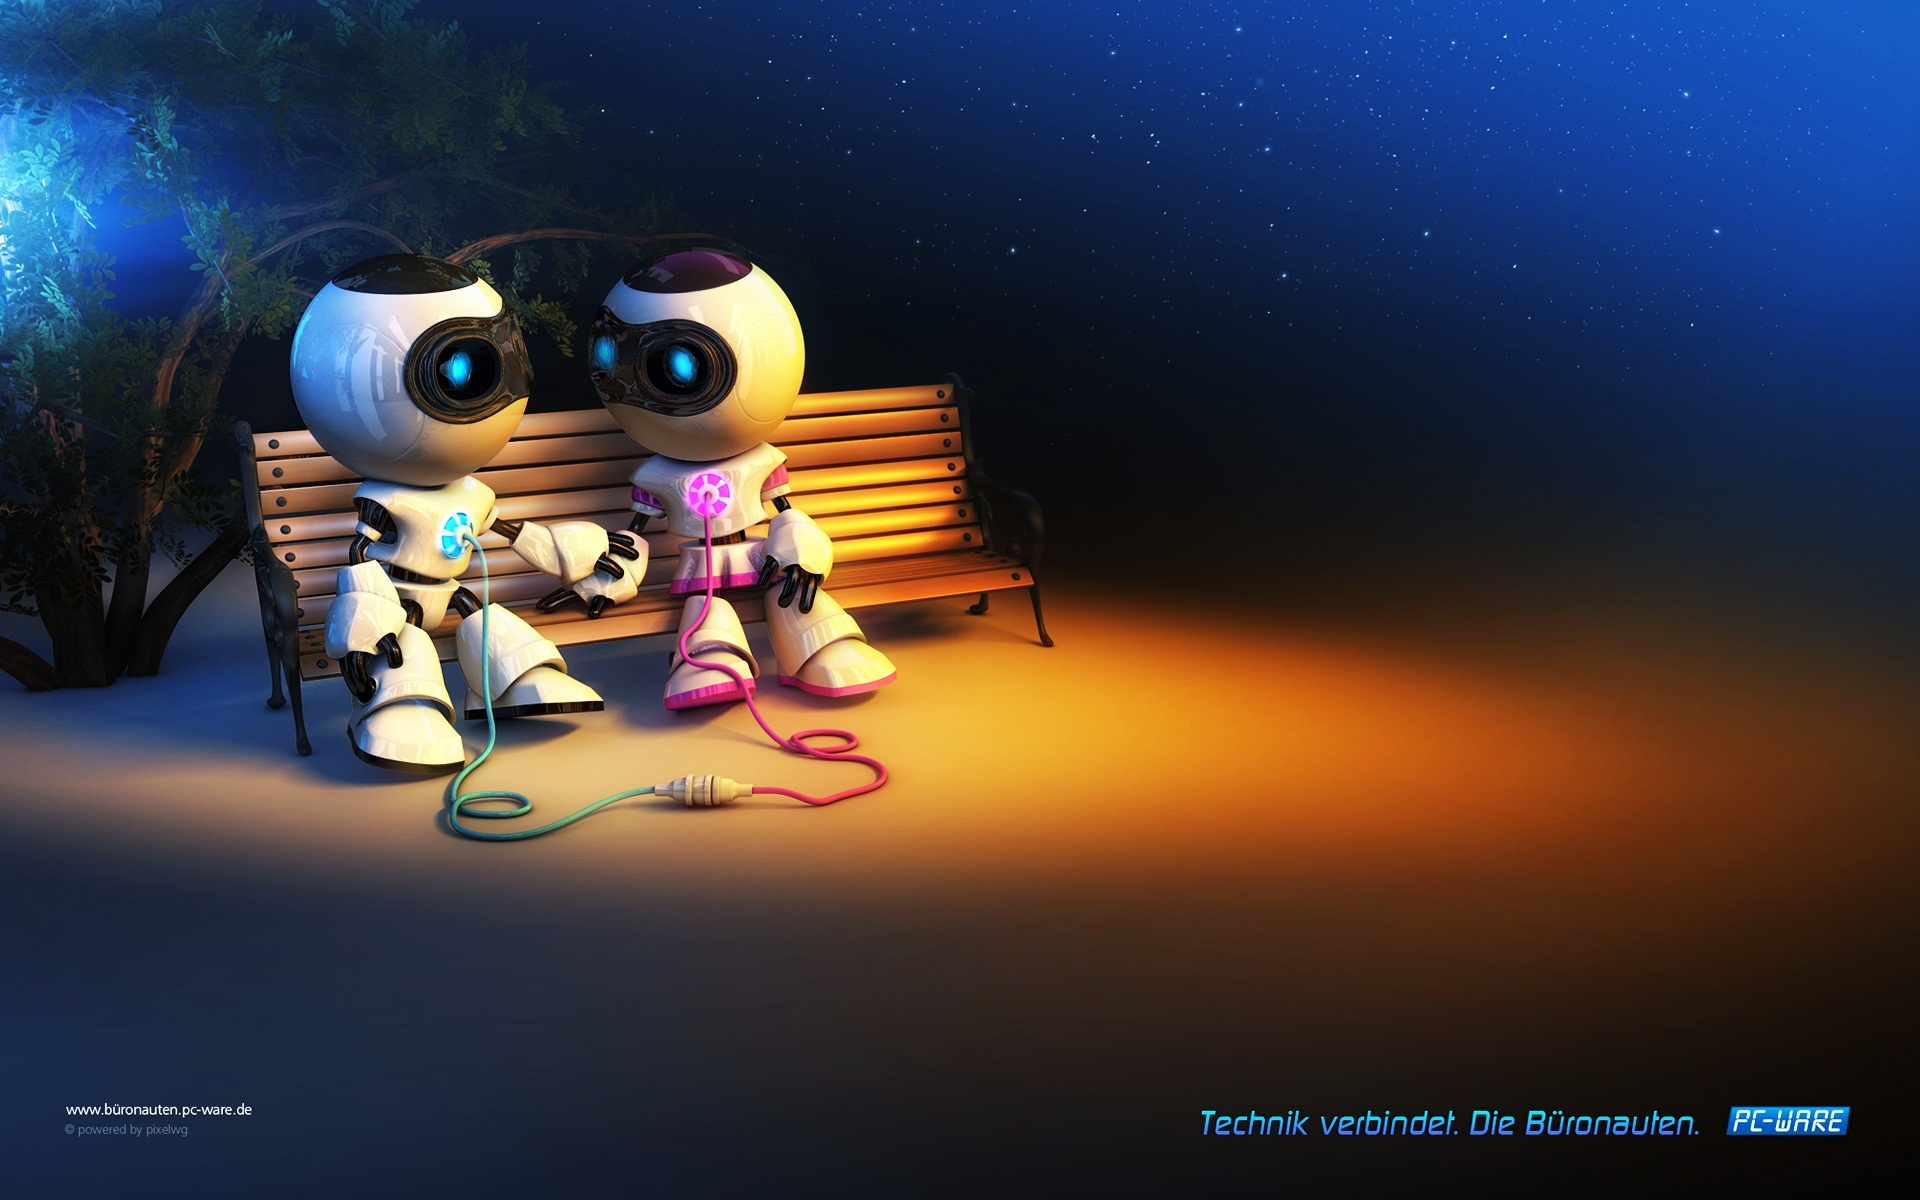 Cute Robot Love Wallpaper Robot Love Full HD Wal...